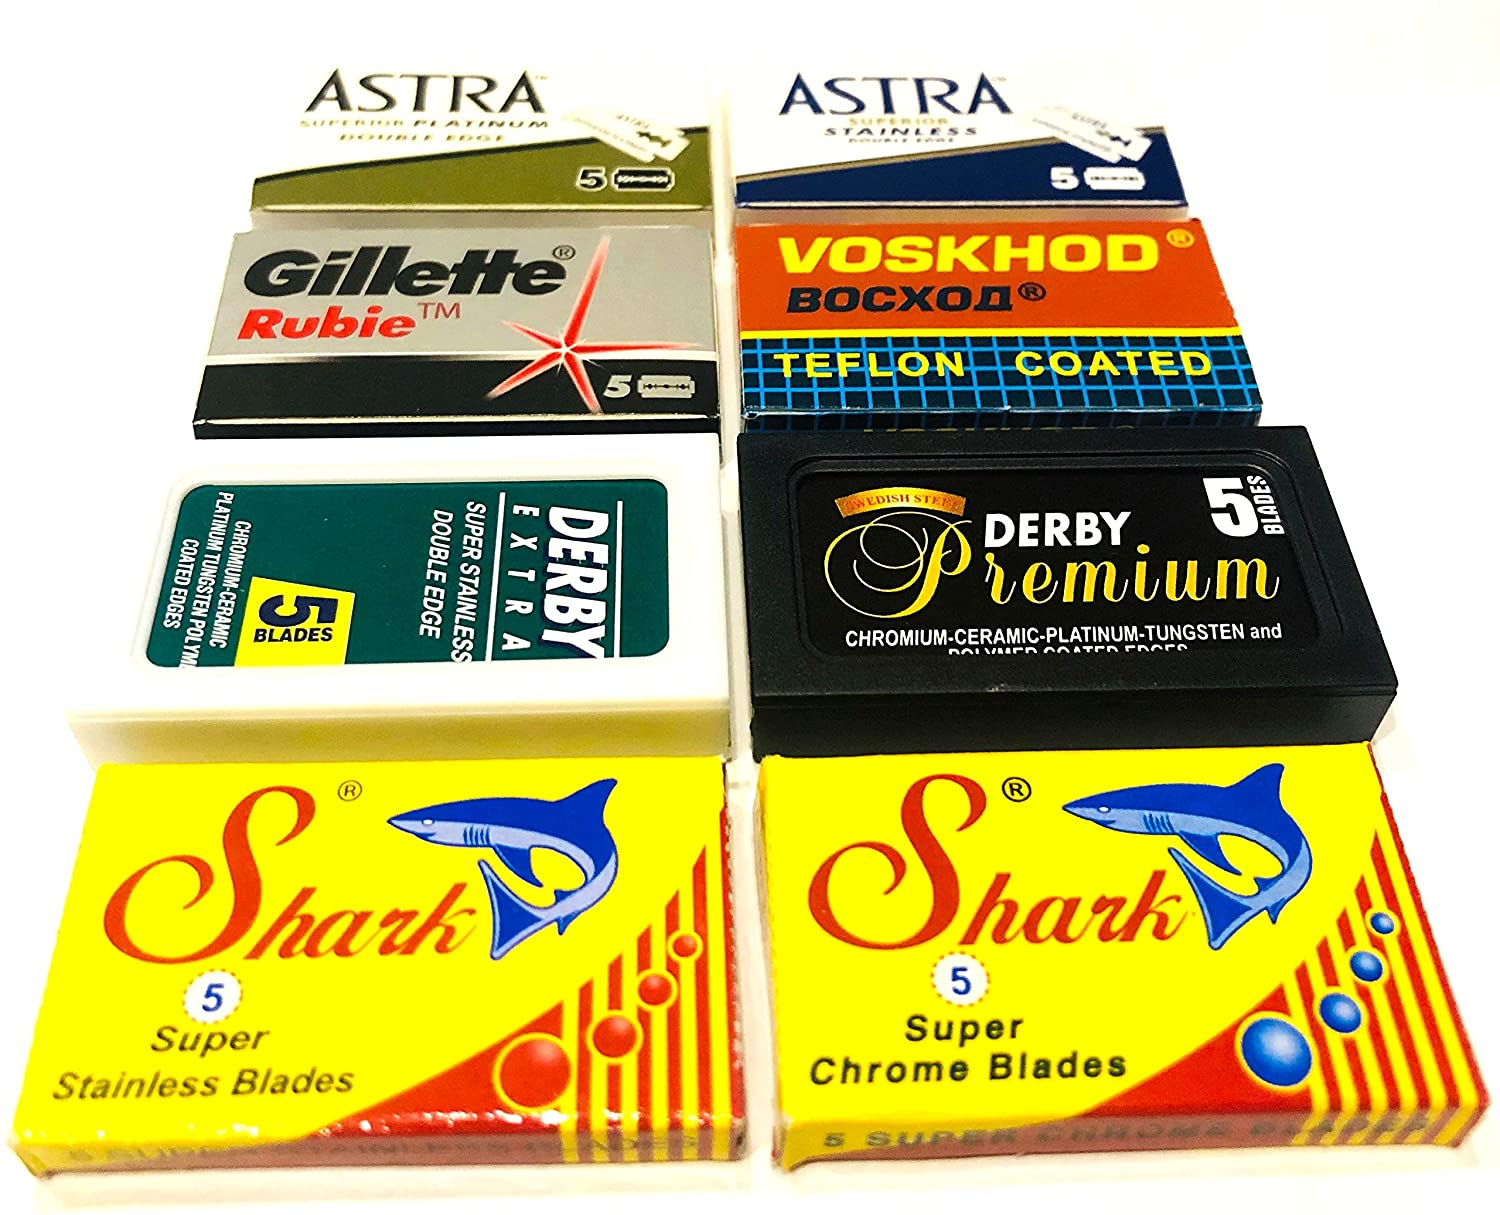 Astra-Derby-Shark-Voskhod Double Edge Razor Blades Sampler (40 blades, 8 different brands)